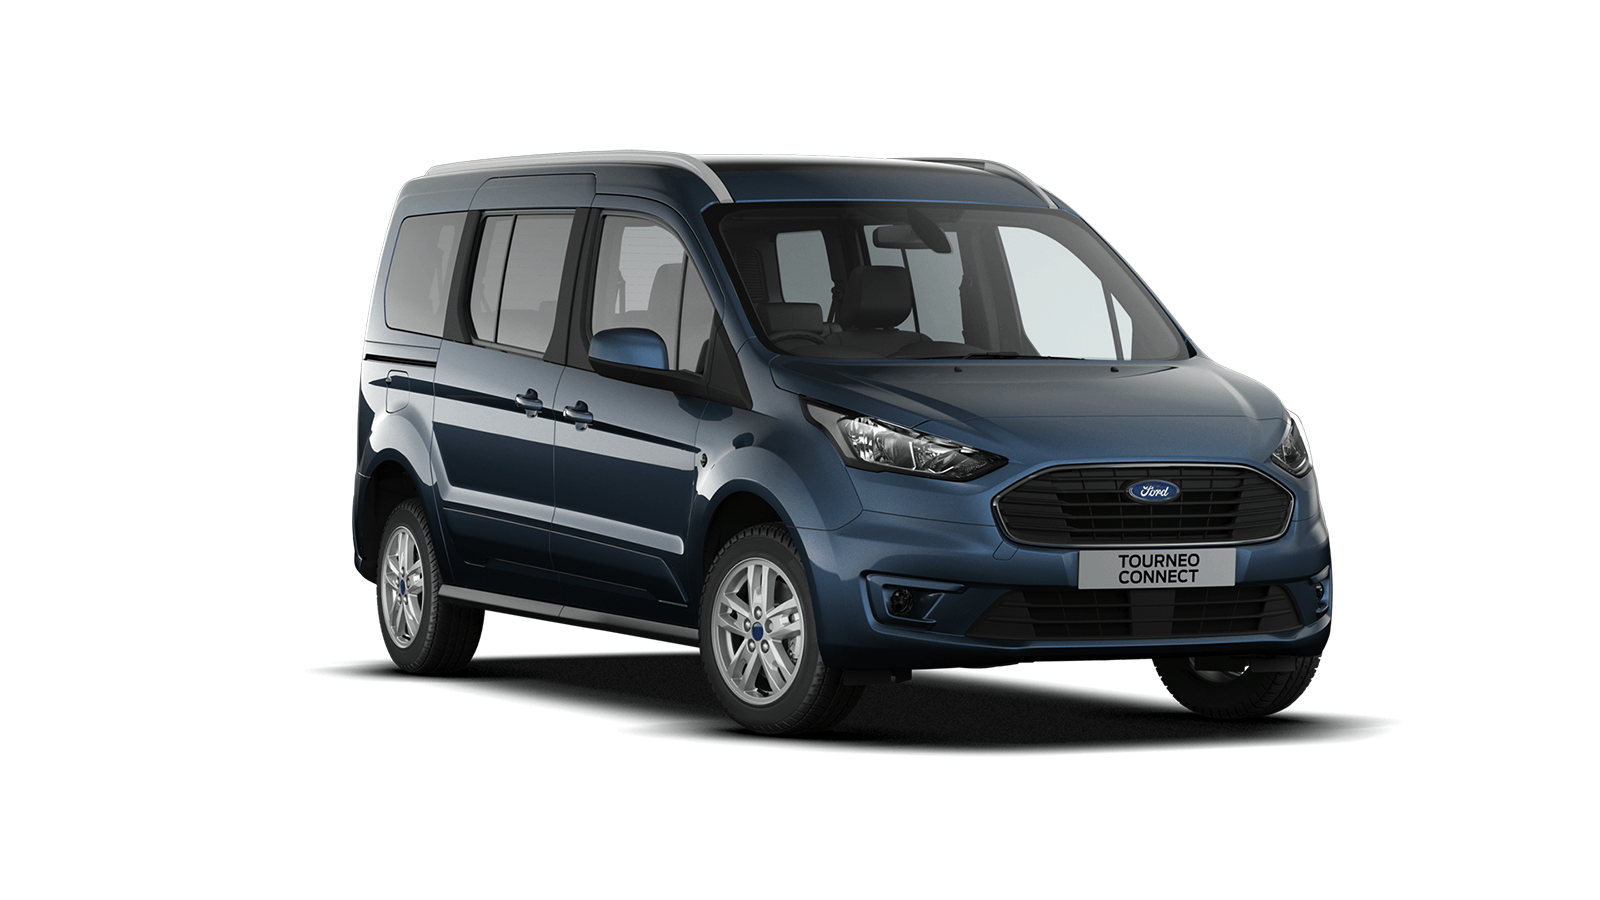 https://www.dealerinternet.co.uk/images/TOURNEO/2019.25/Grand%20Tourneo/Titanium/CHROME-BLUE.png